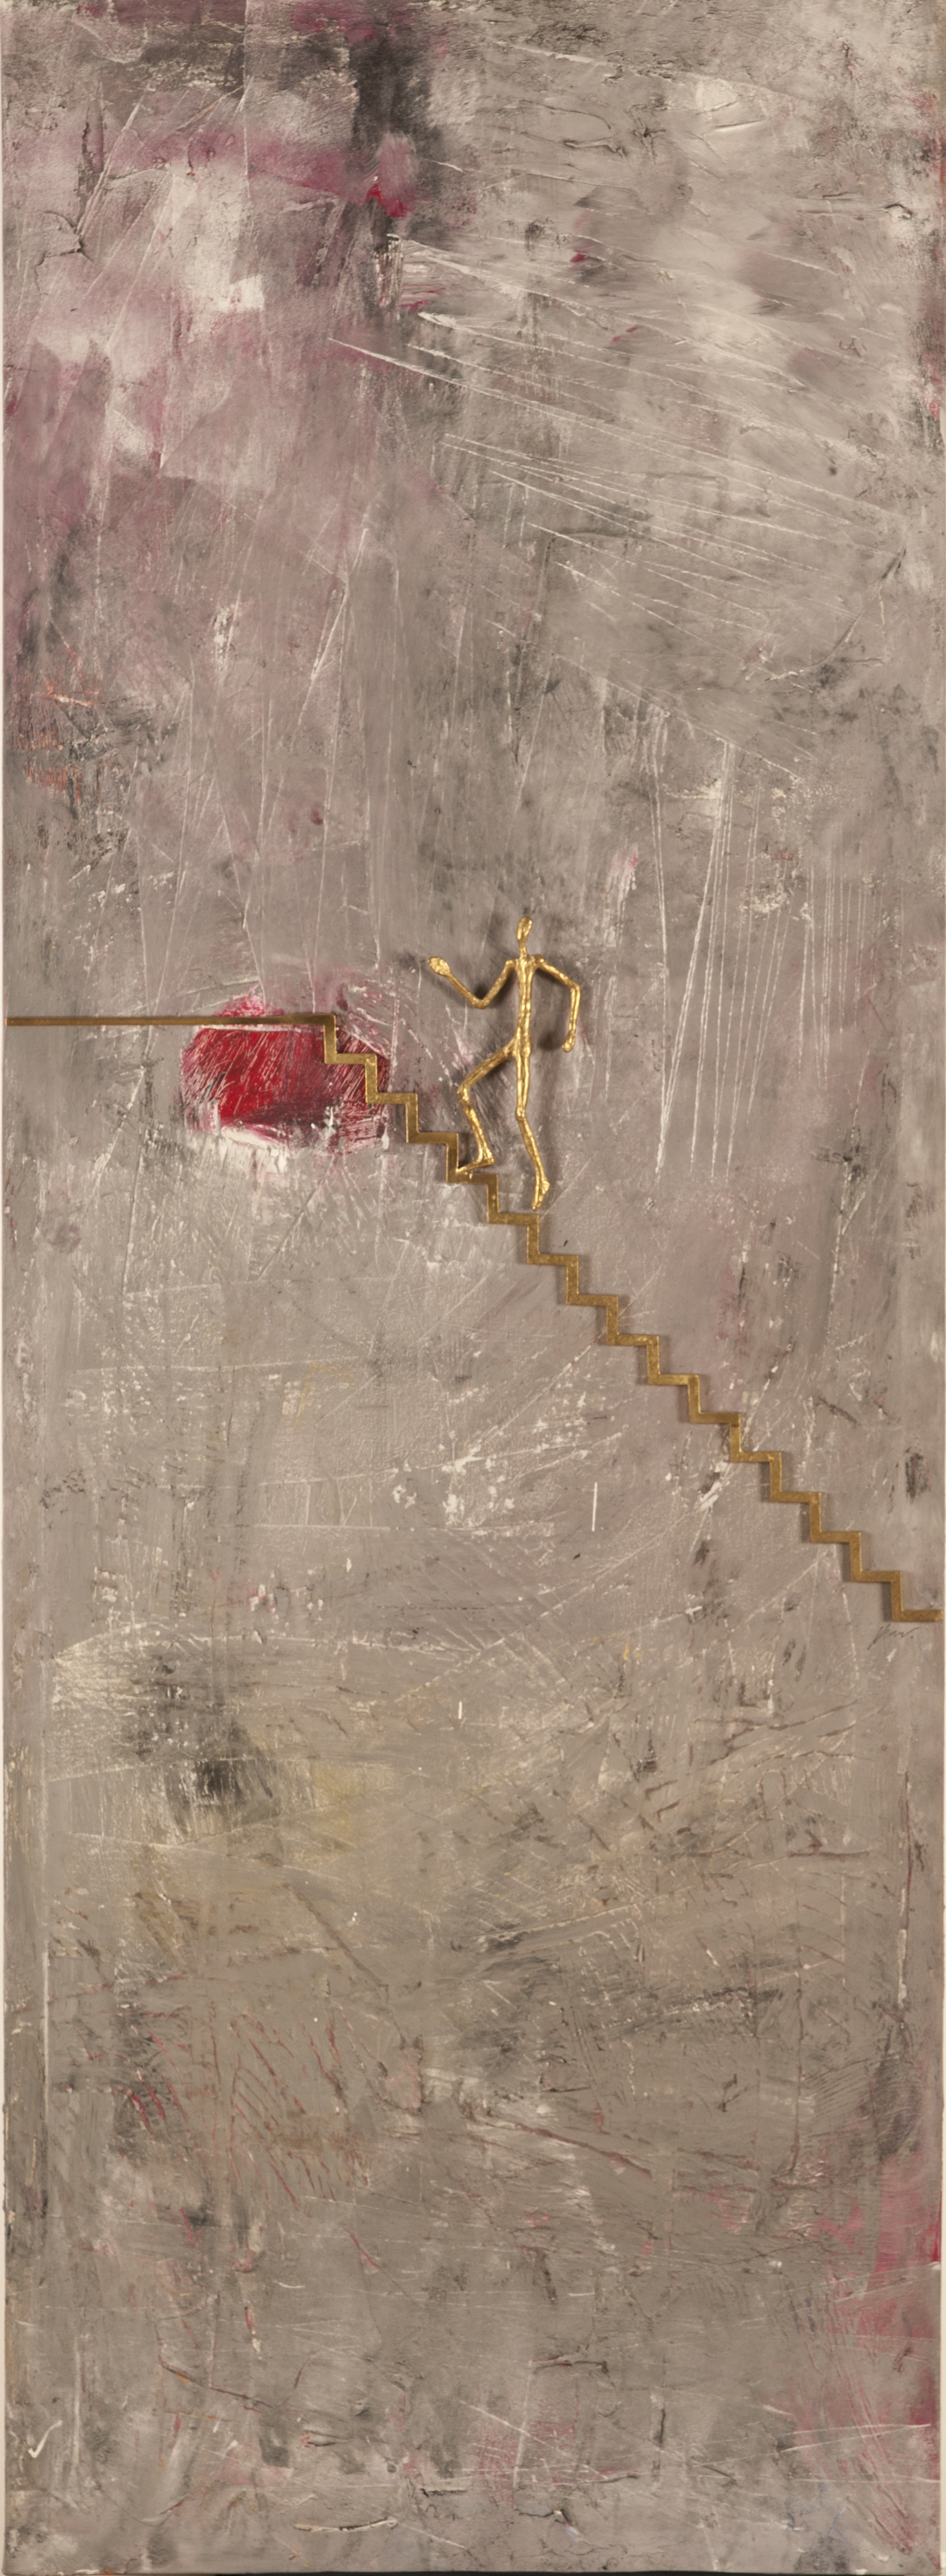 Climbing to success  mix media on canvas size: 70 x 160 Unique